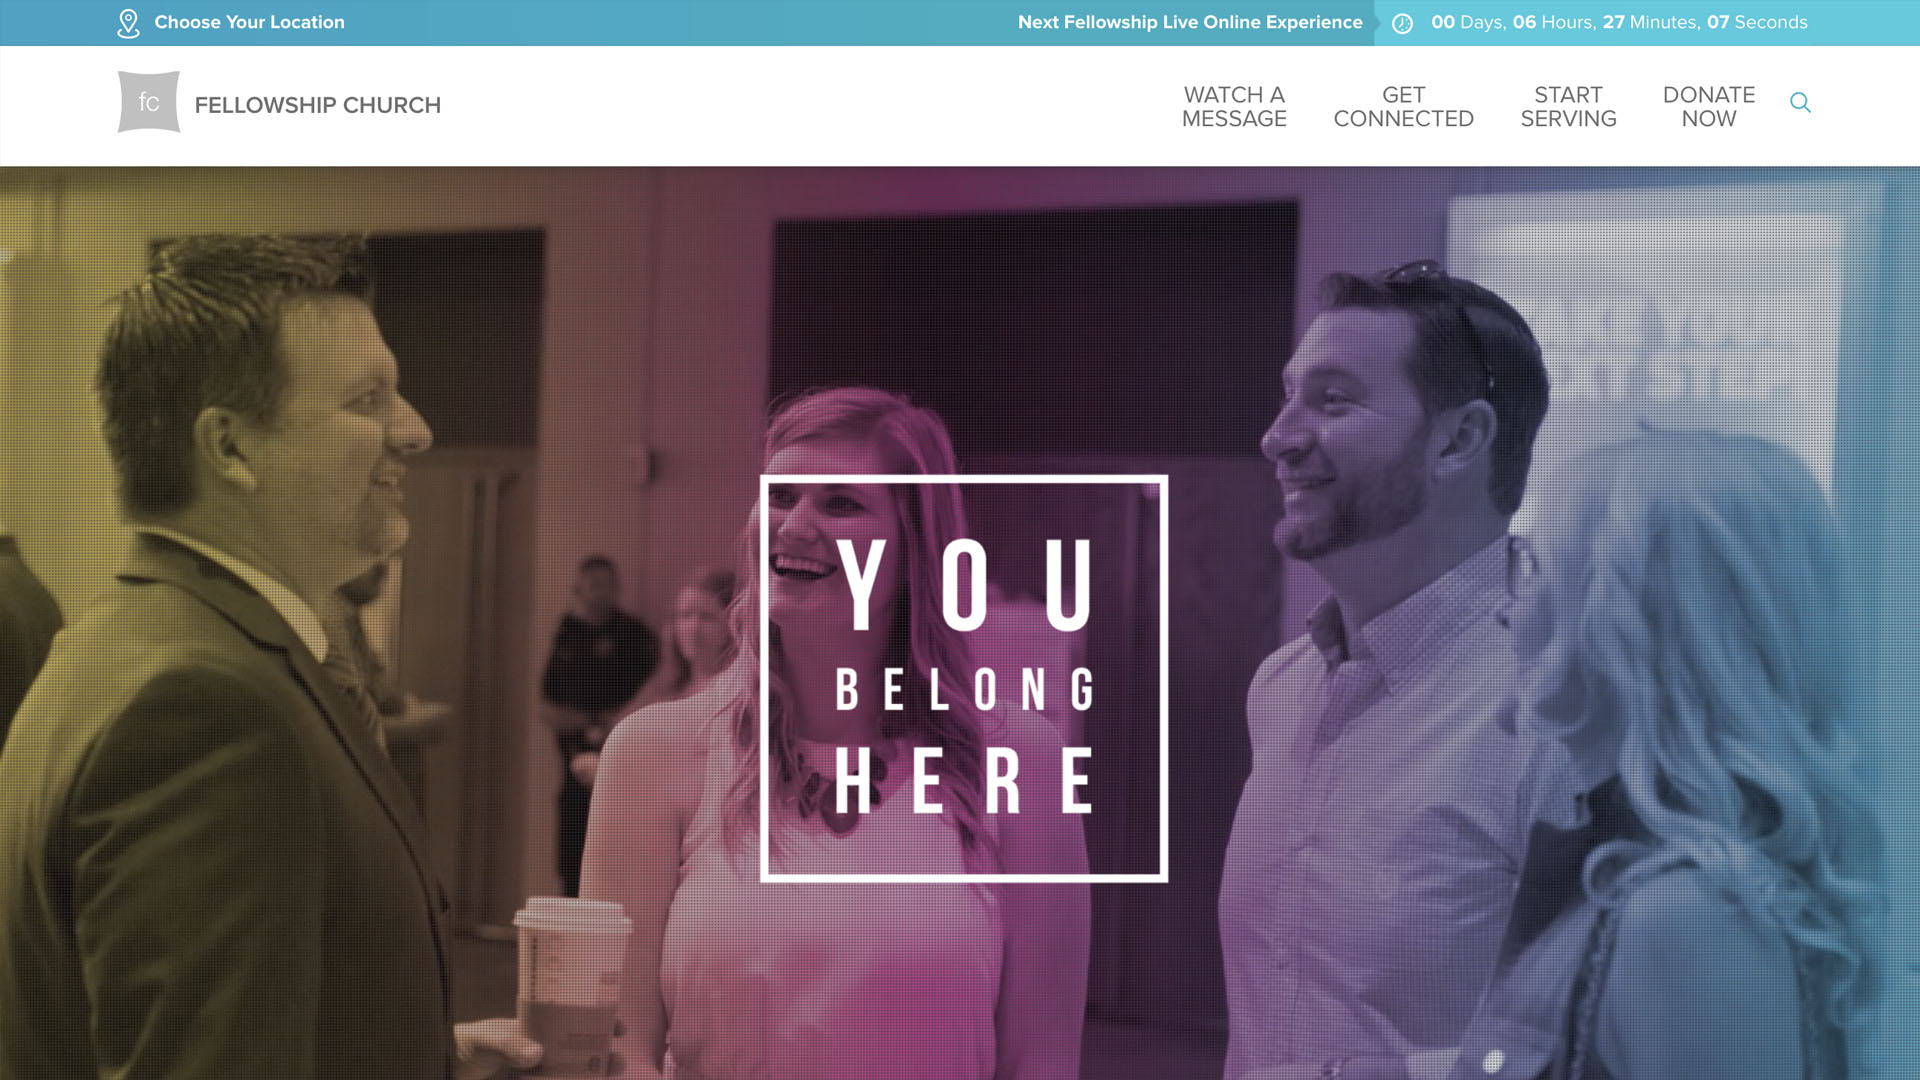 Church Websites Example - Fellowship Church - https://fellowshipchurch.com/